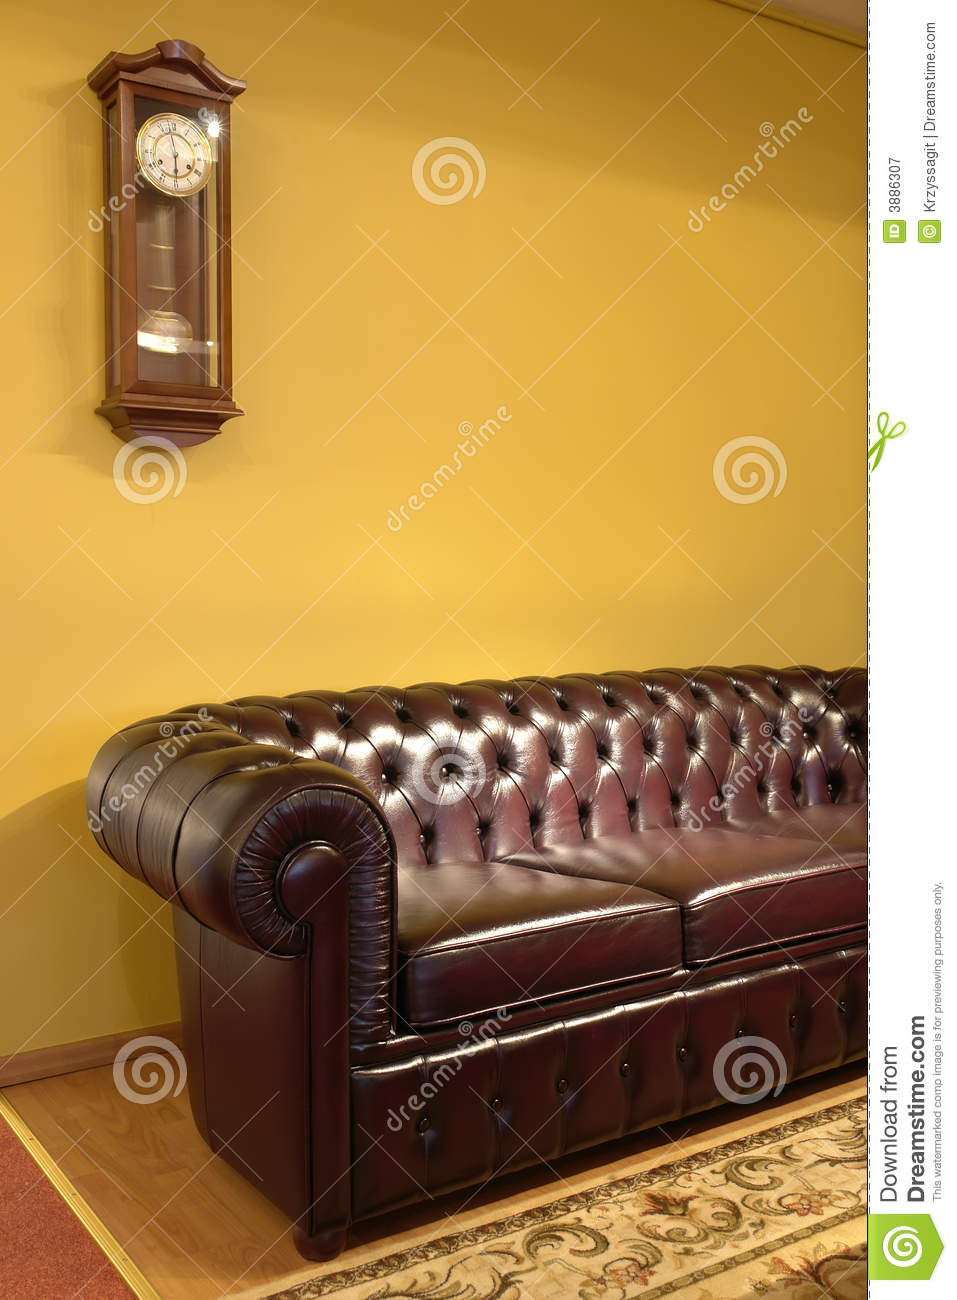 Sofa Vintage A Vendre Brown Leather Sofa And Clock Stock Image Image Of Room